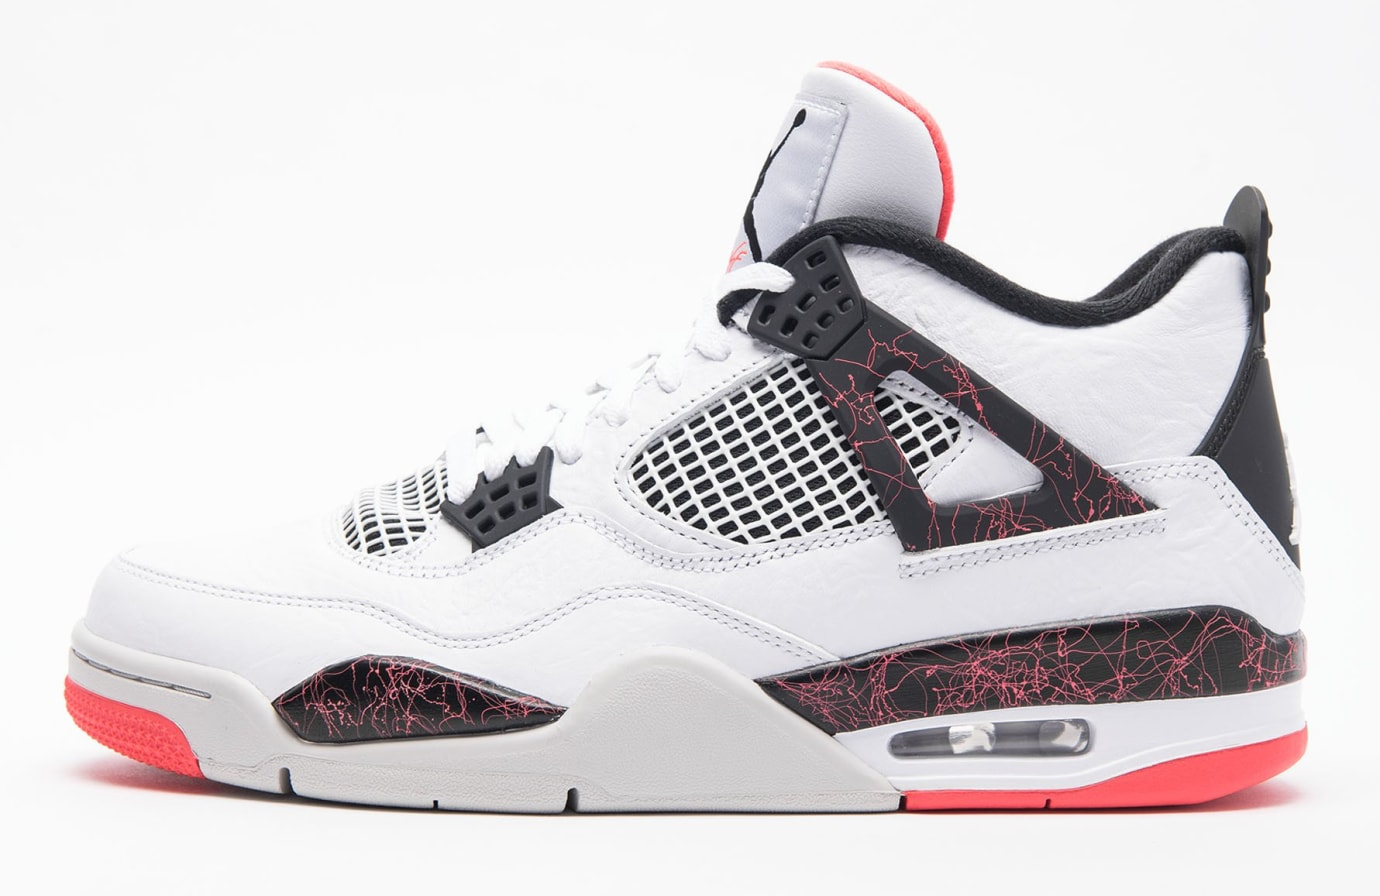 baa09aebf18fb8 Air Jordan 4 Retro  White Black-Light Crimson-Pale Citron  308497 ...